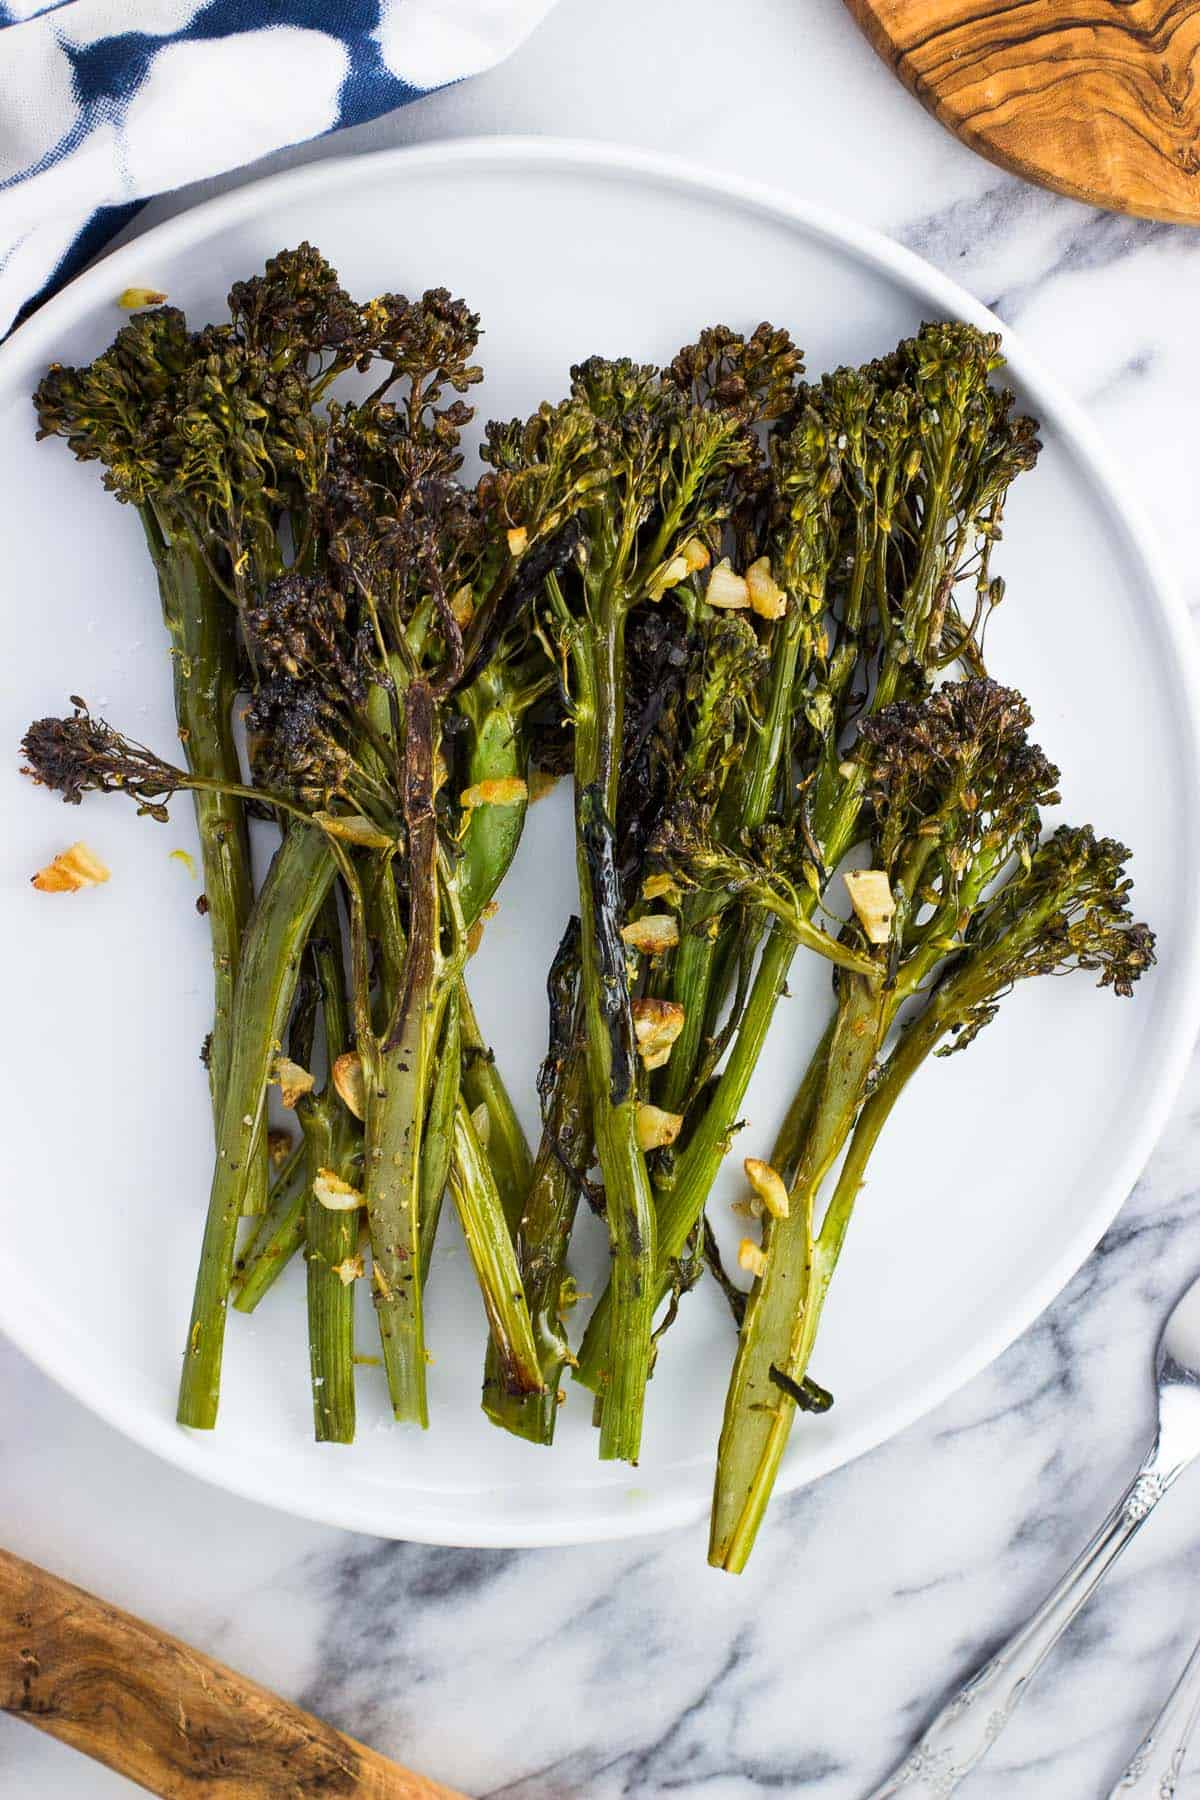 Broccolini on a plate roasted with bits of garlic.